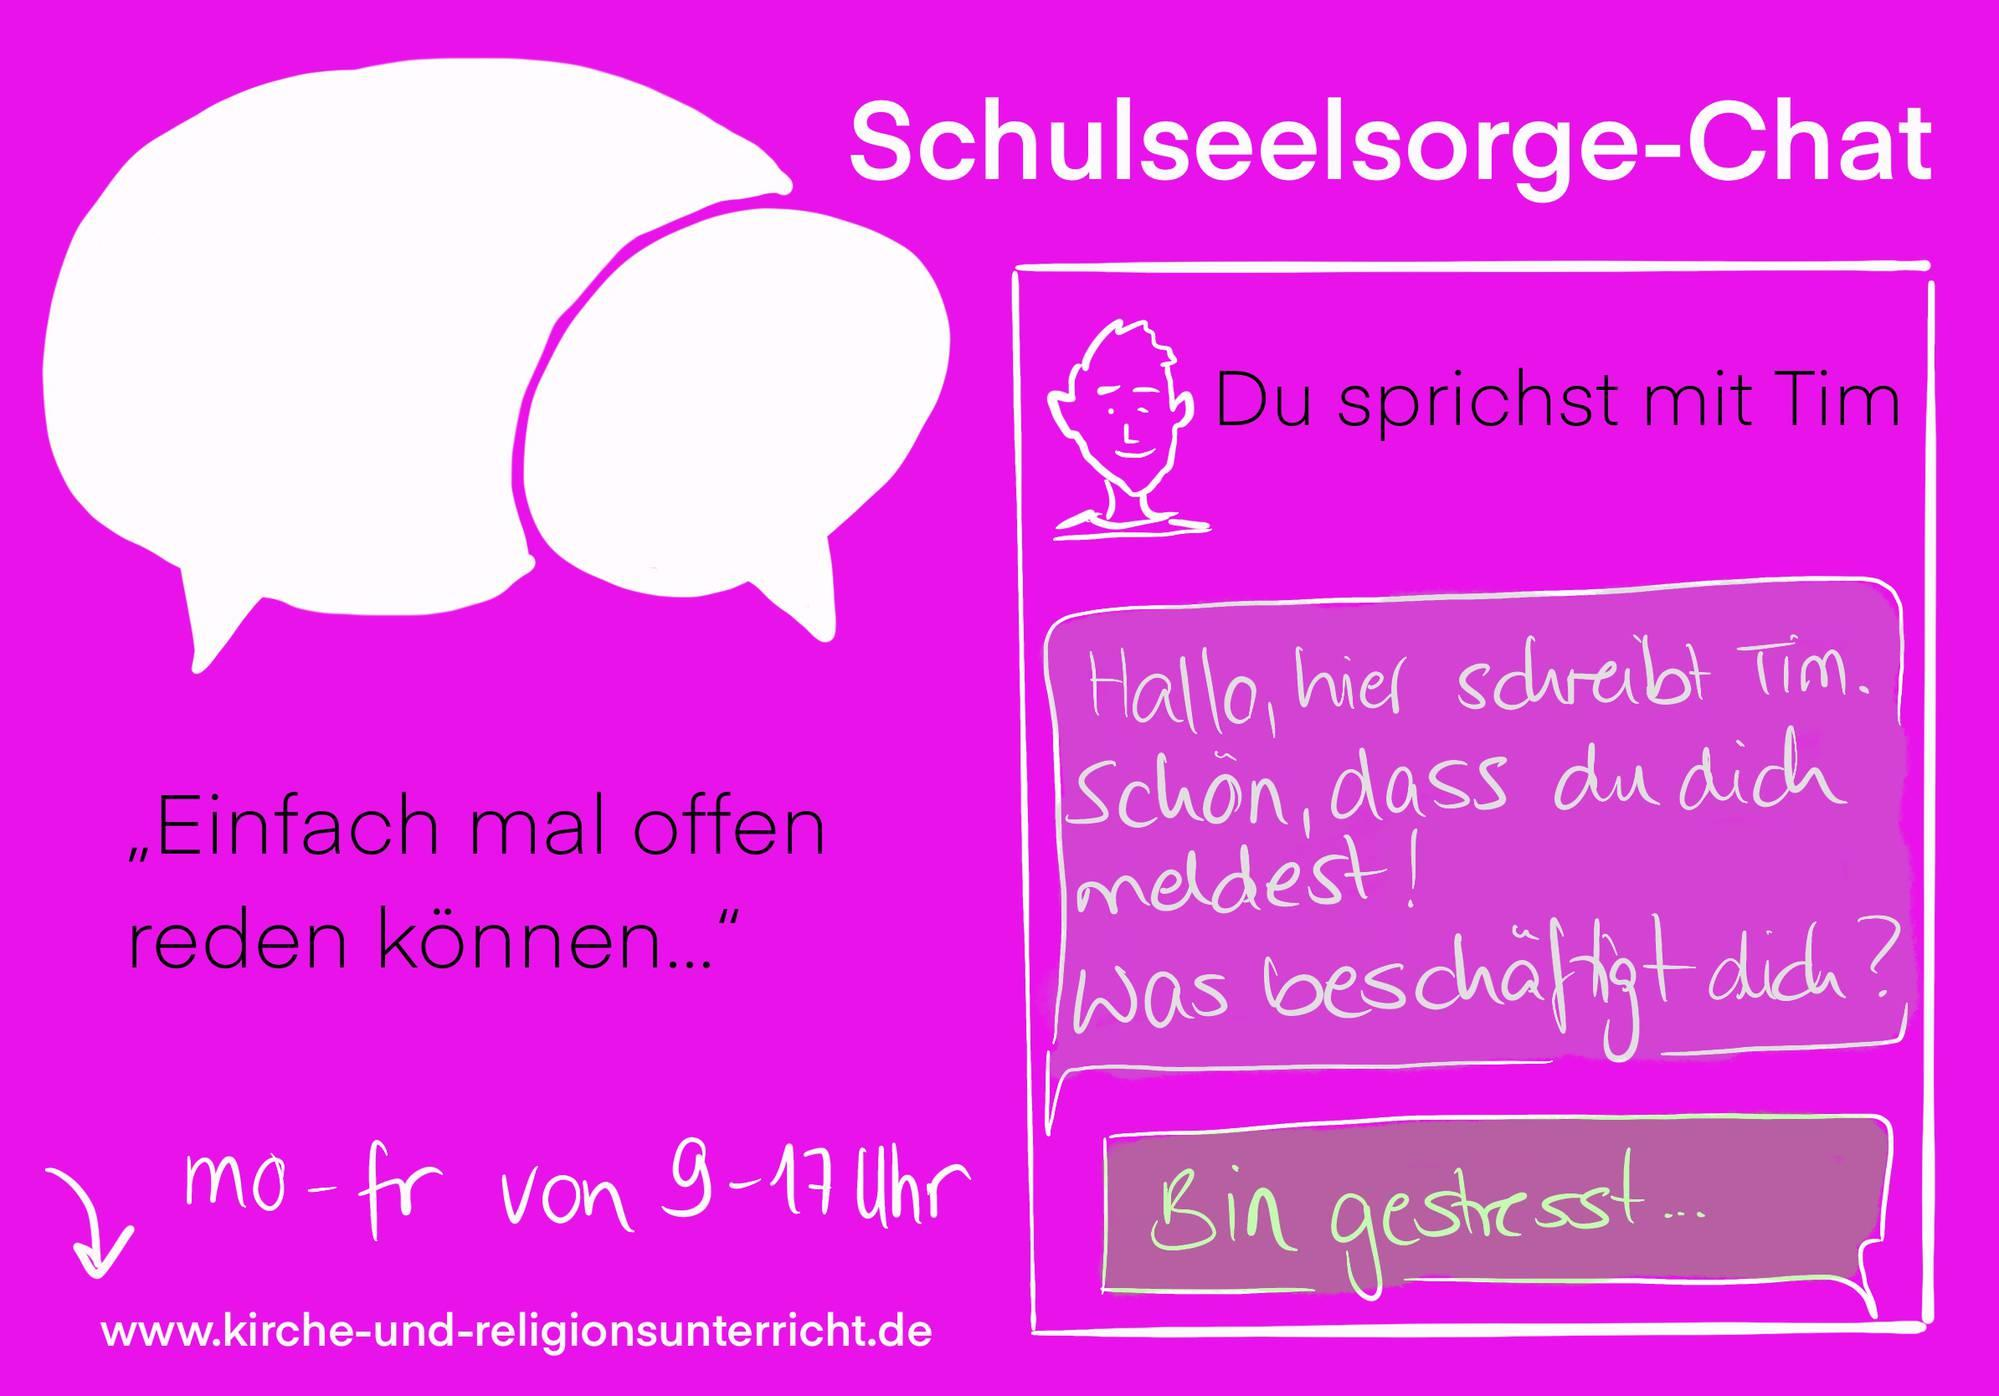 csm Schulseelsorge Chat 3bdf131a96